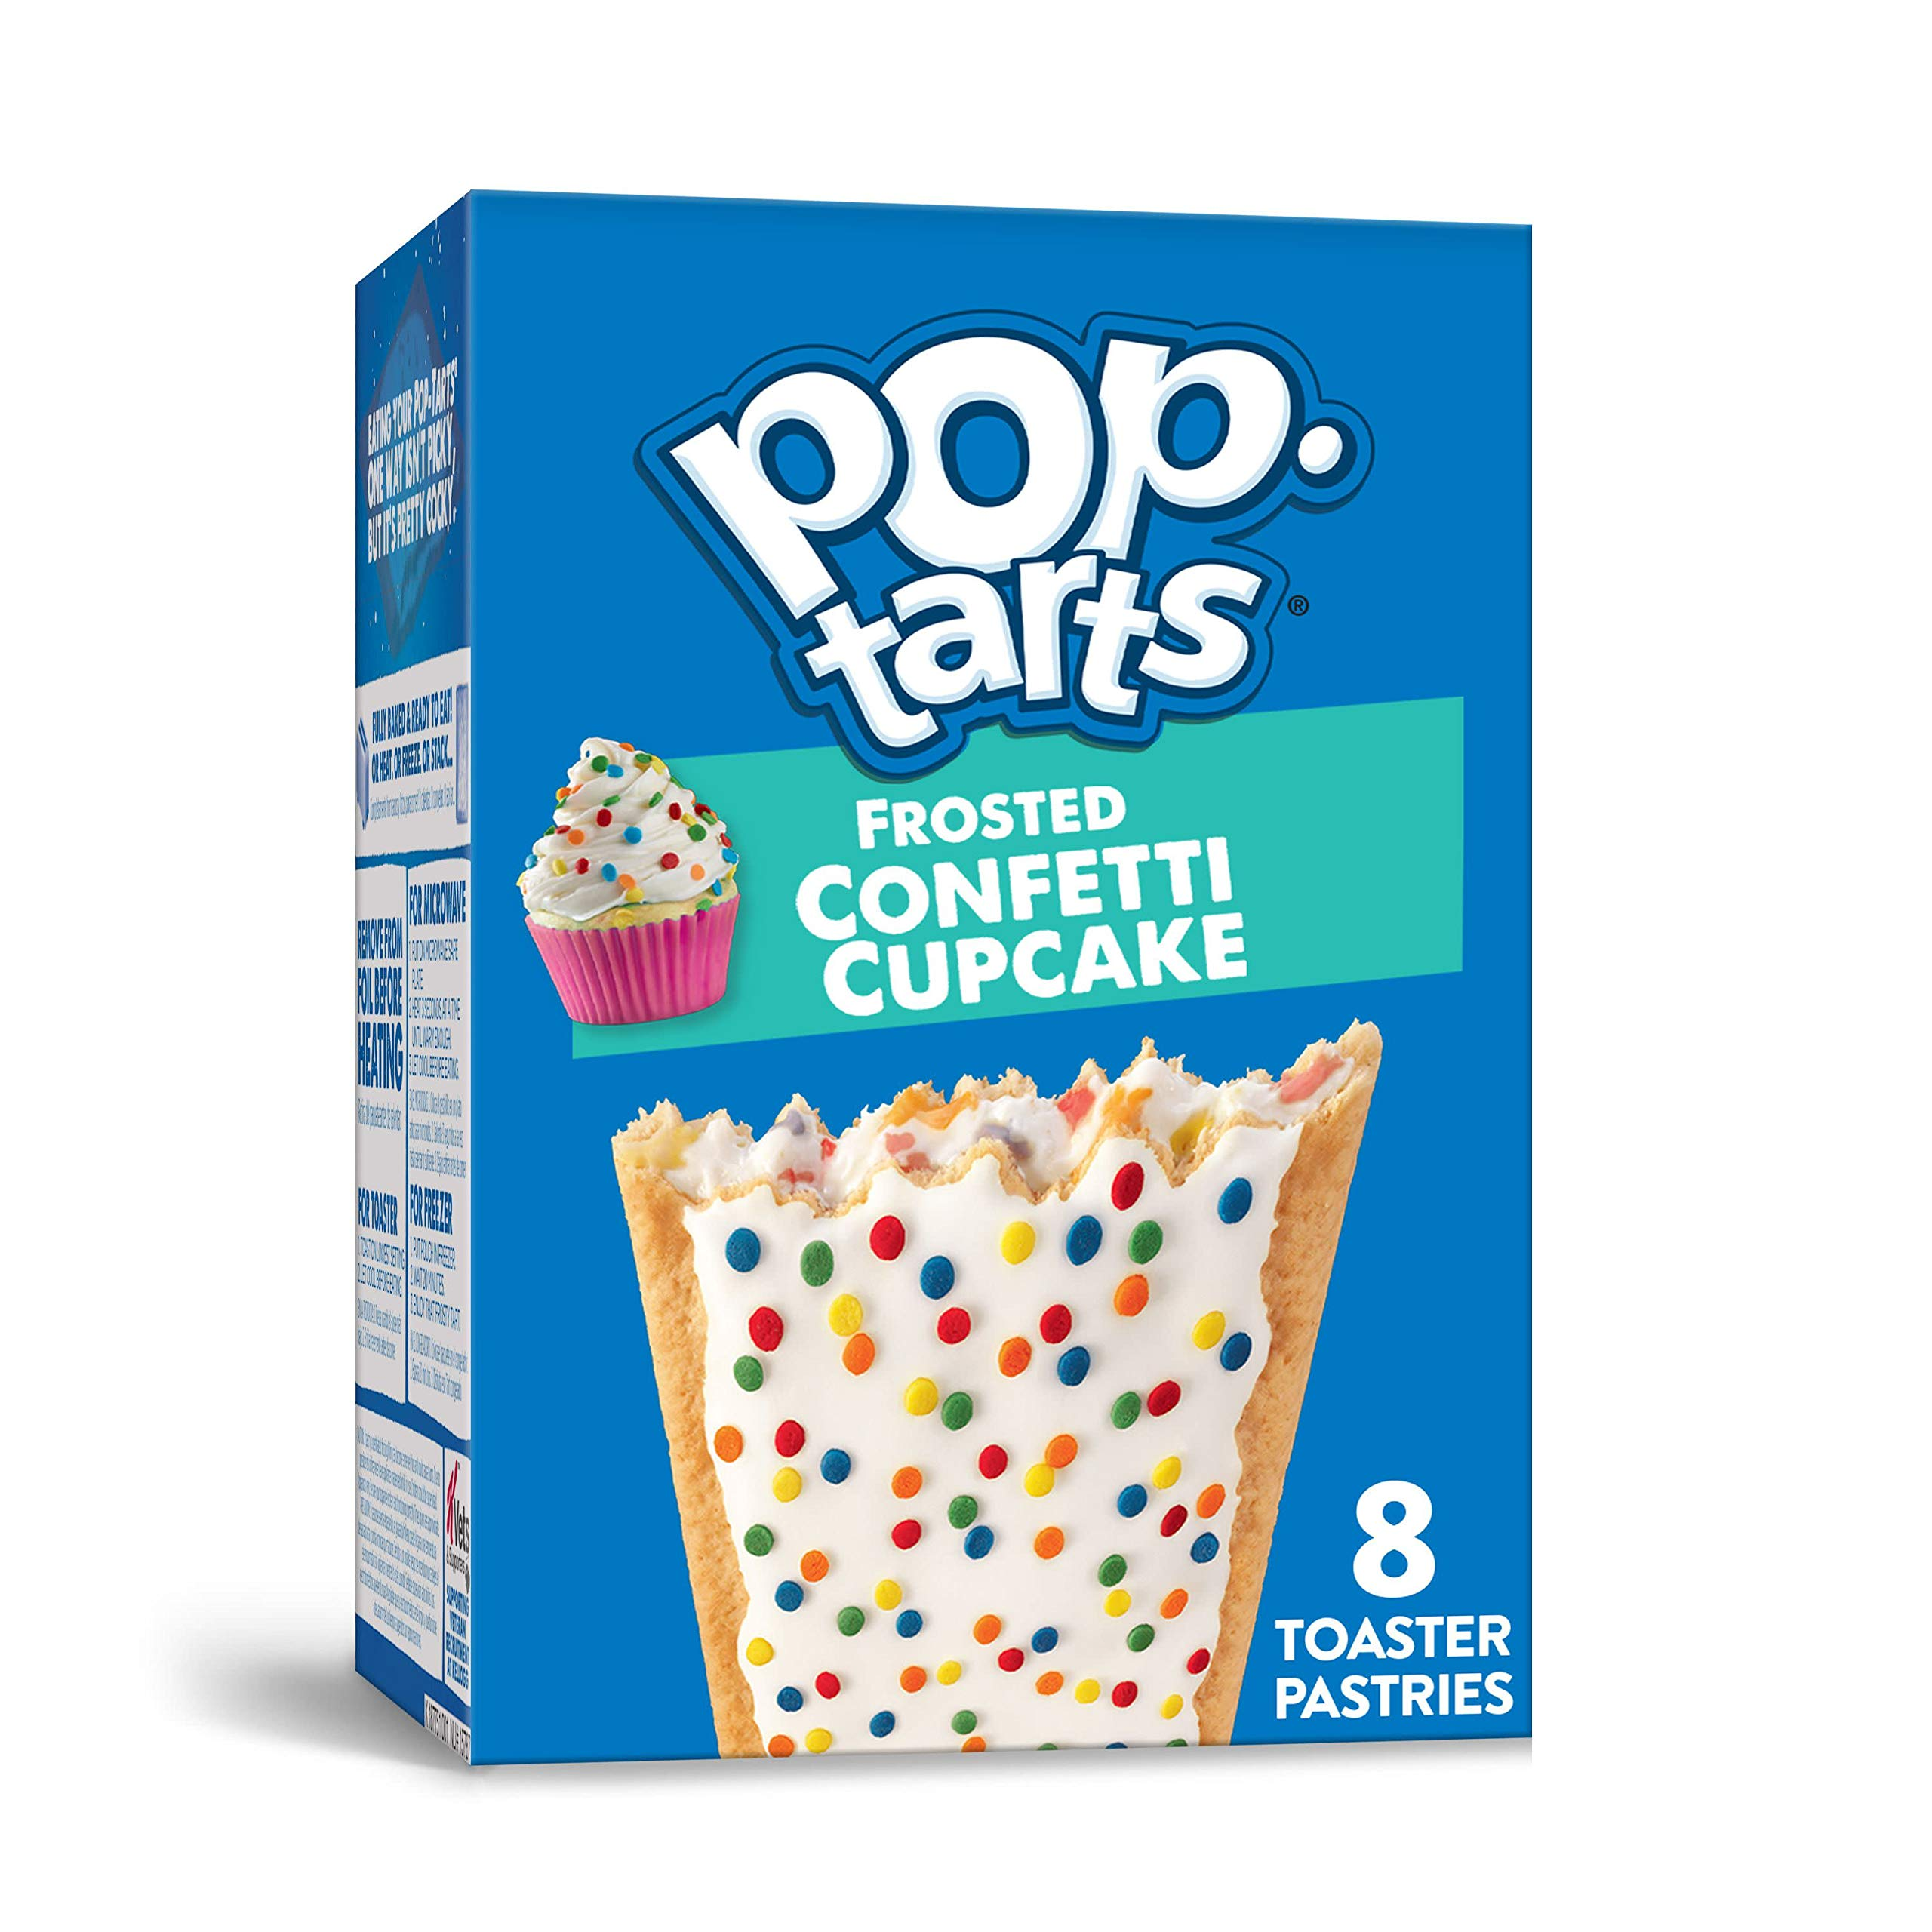 Pop-Tarts, Breakfast Toaster Pastries, Frosted Confetti Cupcake, Proudly Baked in the USA, 13.5oz Box (4 Count)